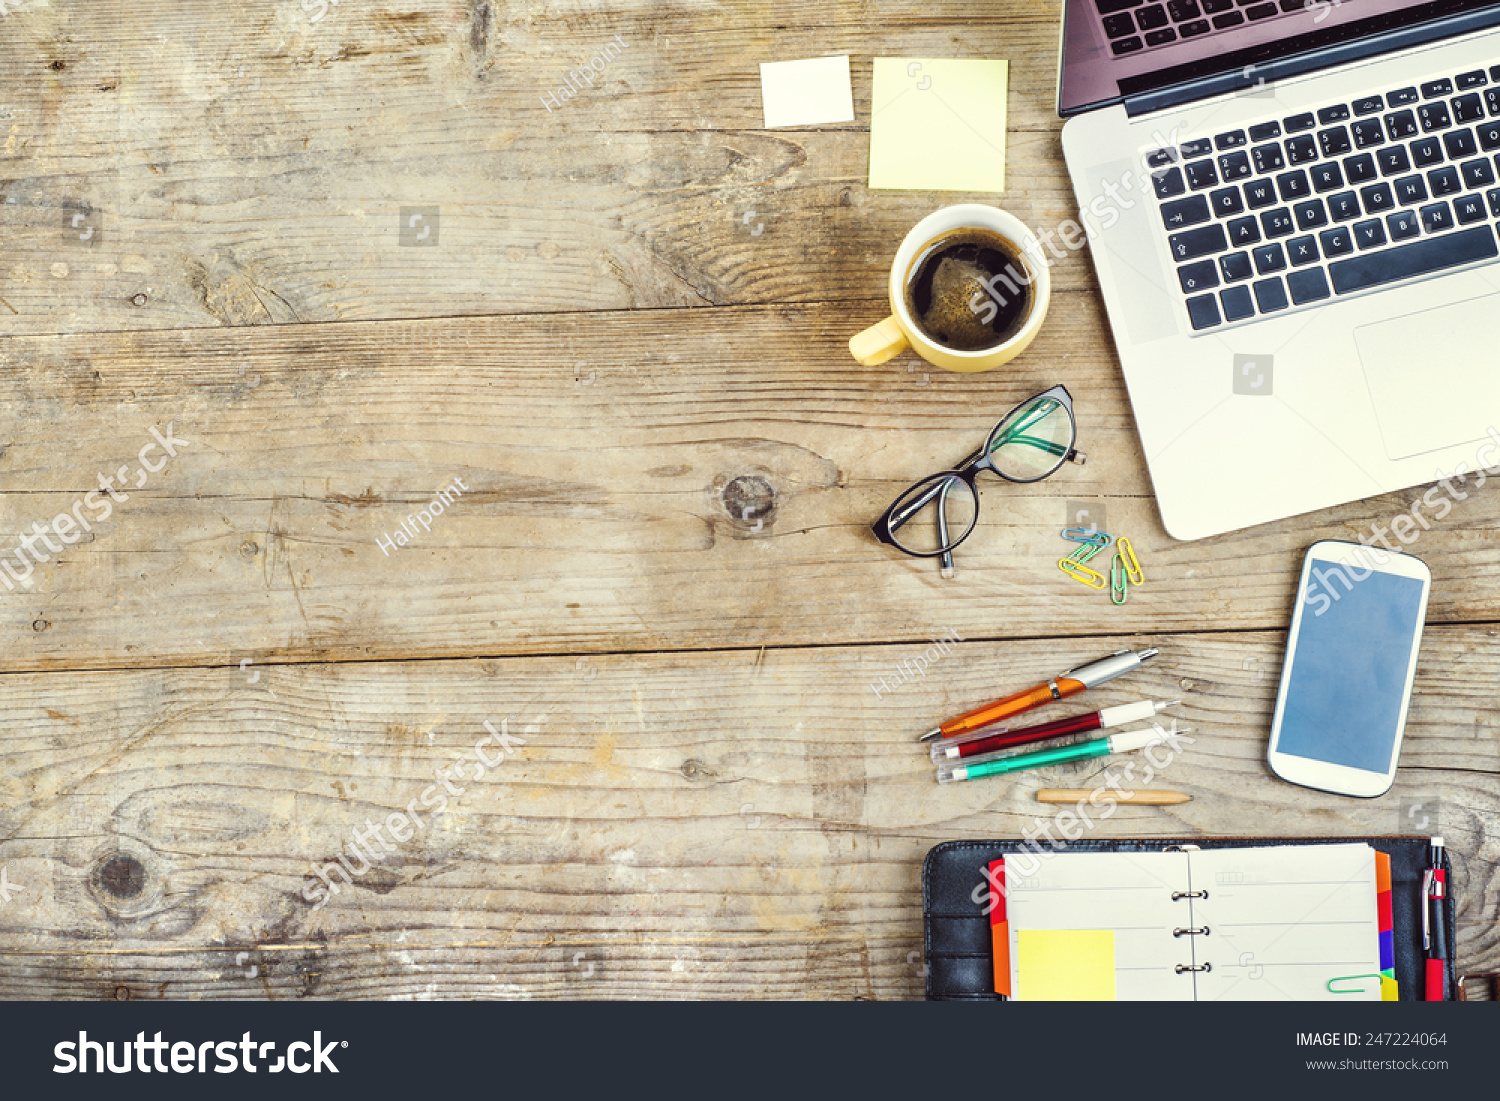 Mix office supplies gadgets on wooden stock photo for Best home wallpaper websites